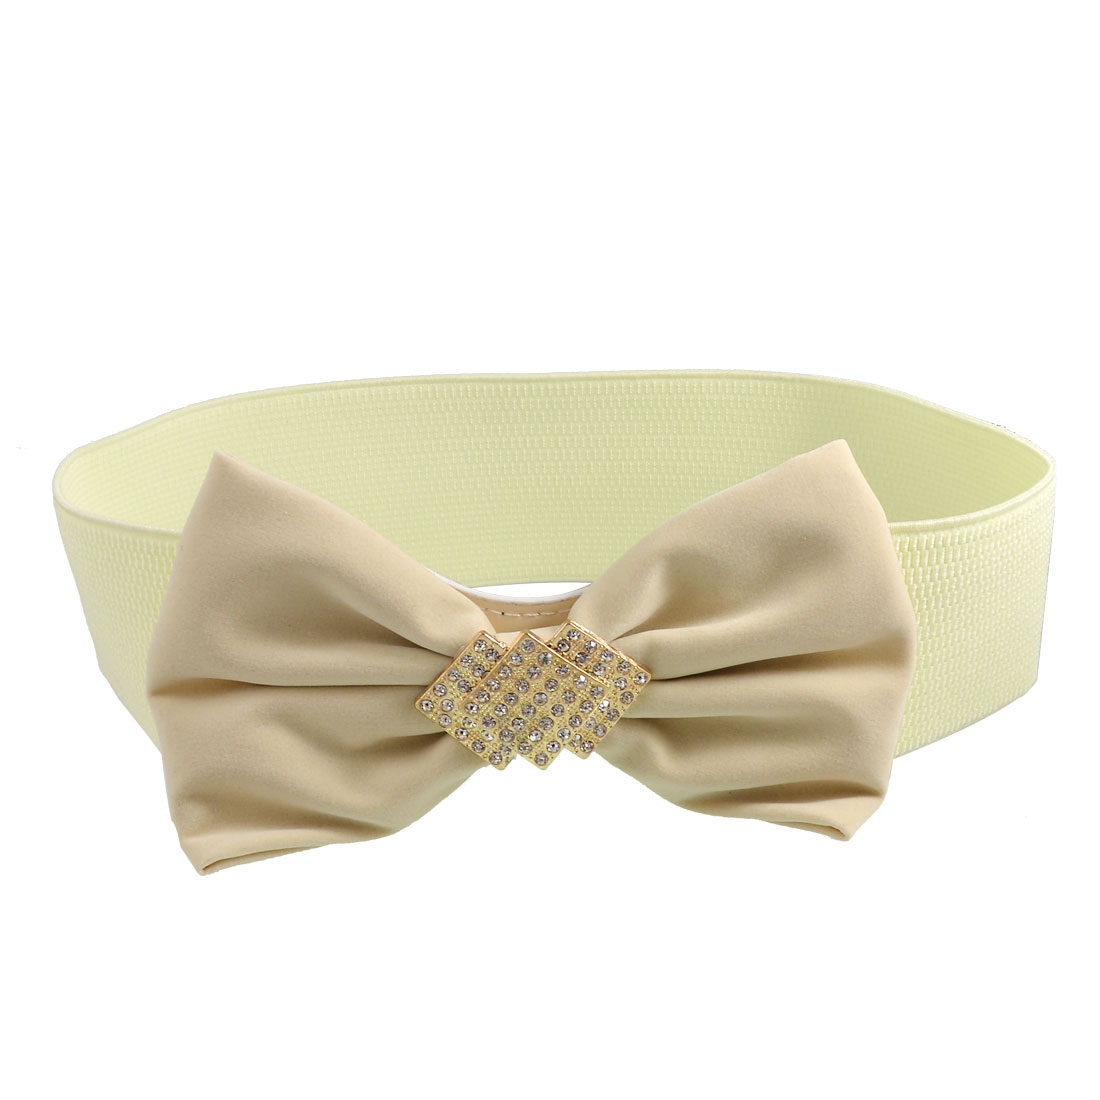 Press Stud Button Rhinestone Bowknot Decor Elasticated Waistbelt Beige